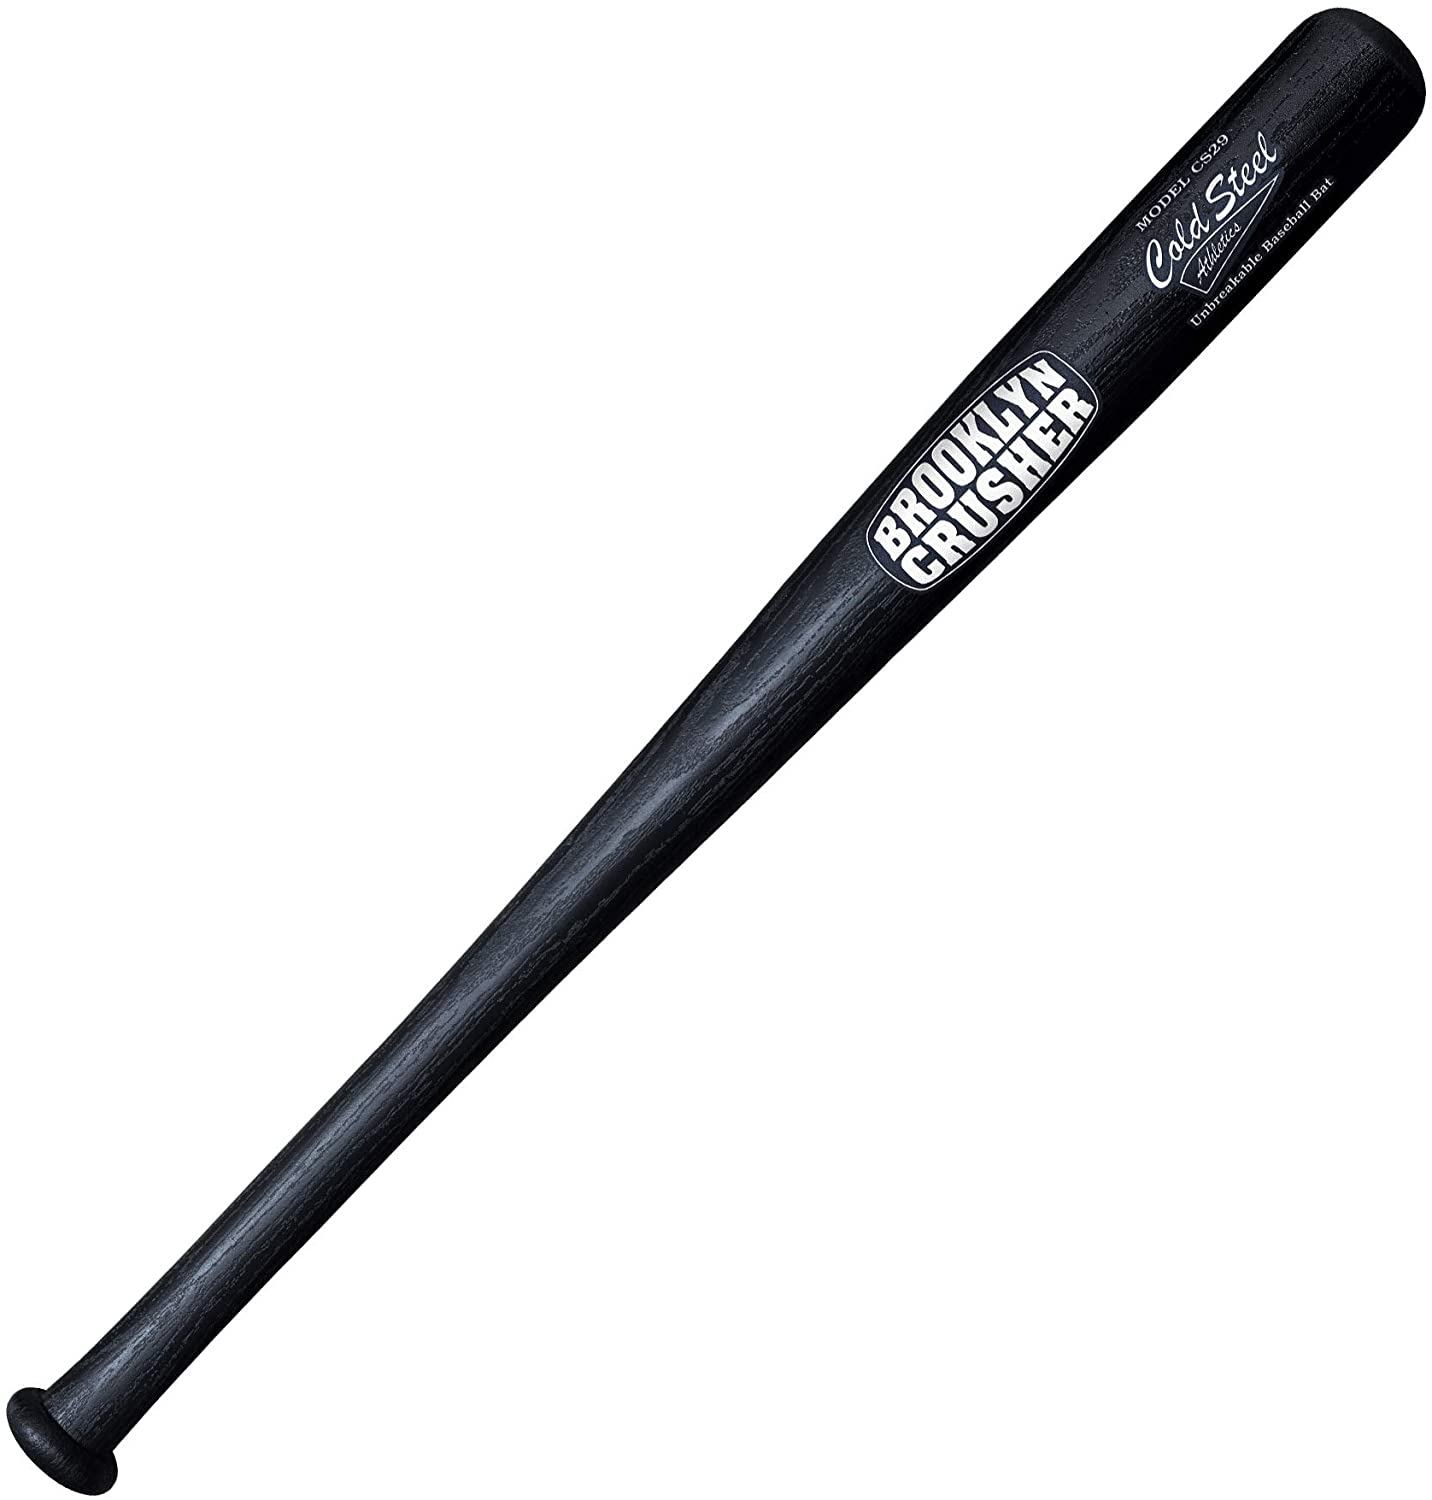 Cold Steel Defense Baseball Bat Brooklyn Crusher Review